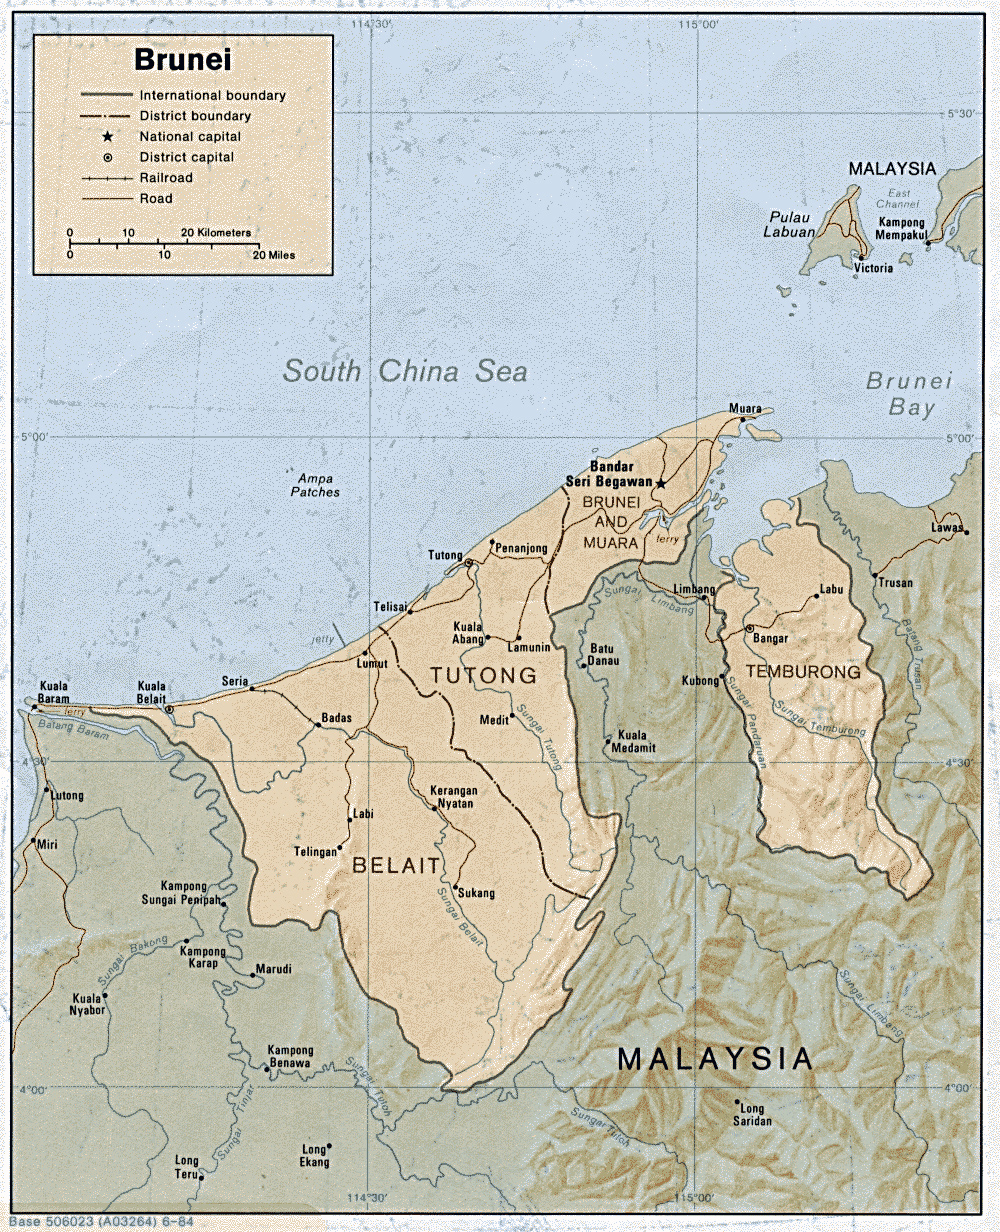 Maps of brunei detailed map of brunei in english tourist map of detailed political and administrative map of brunei with relief 1984 gumiabroncs Choice Image